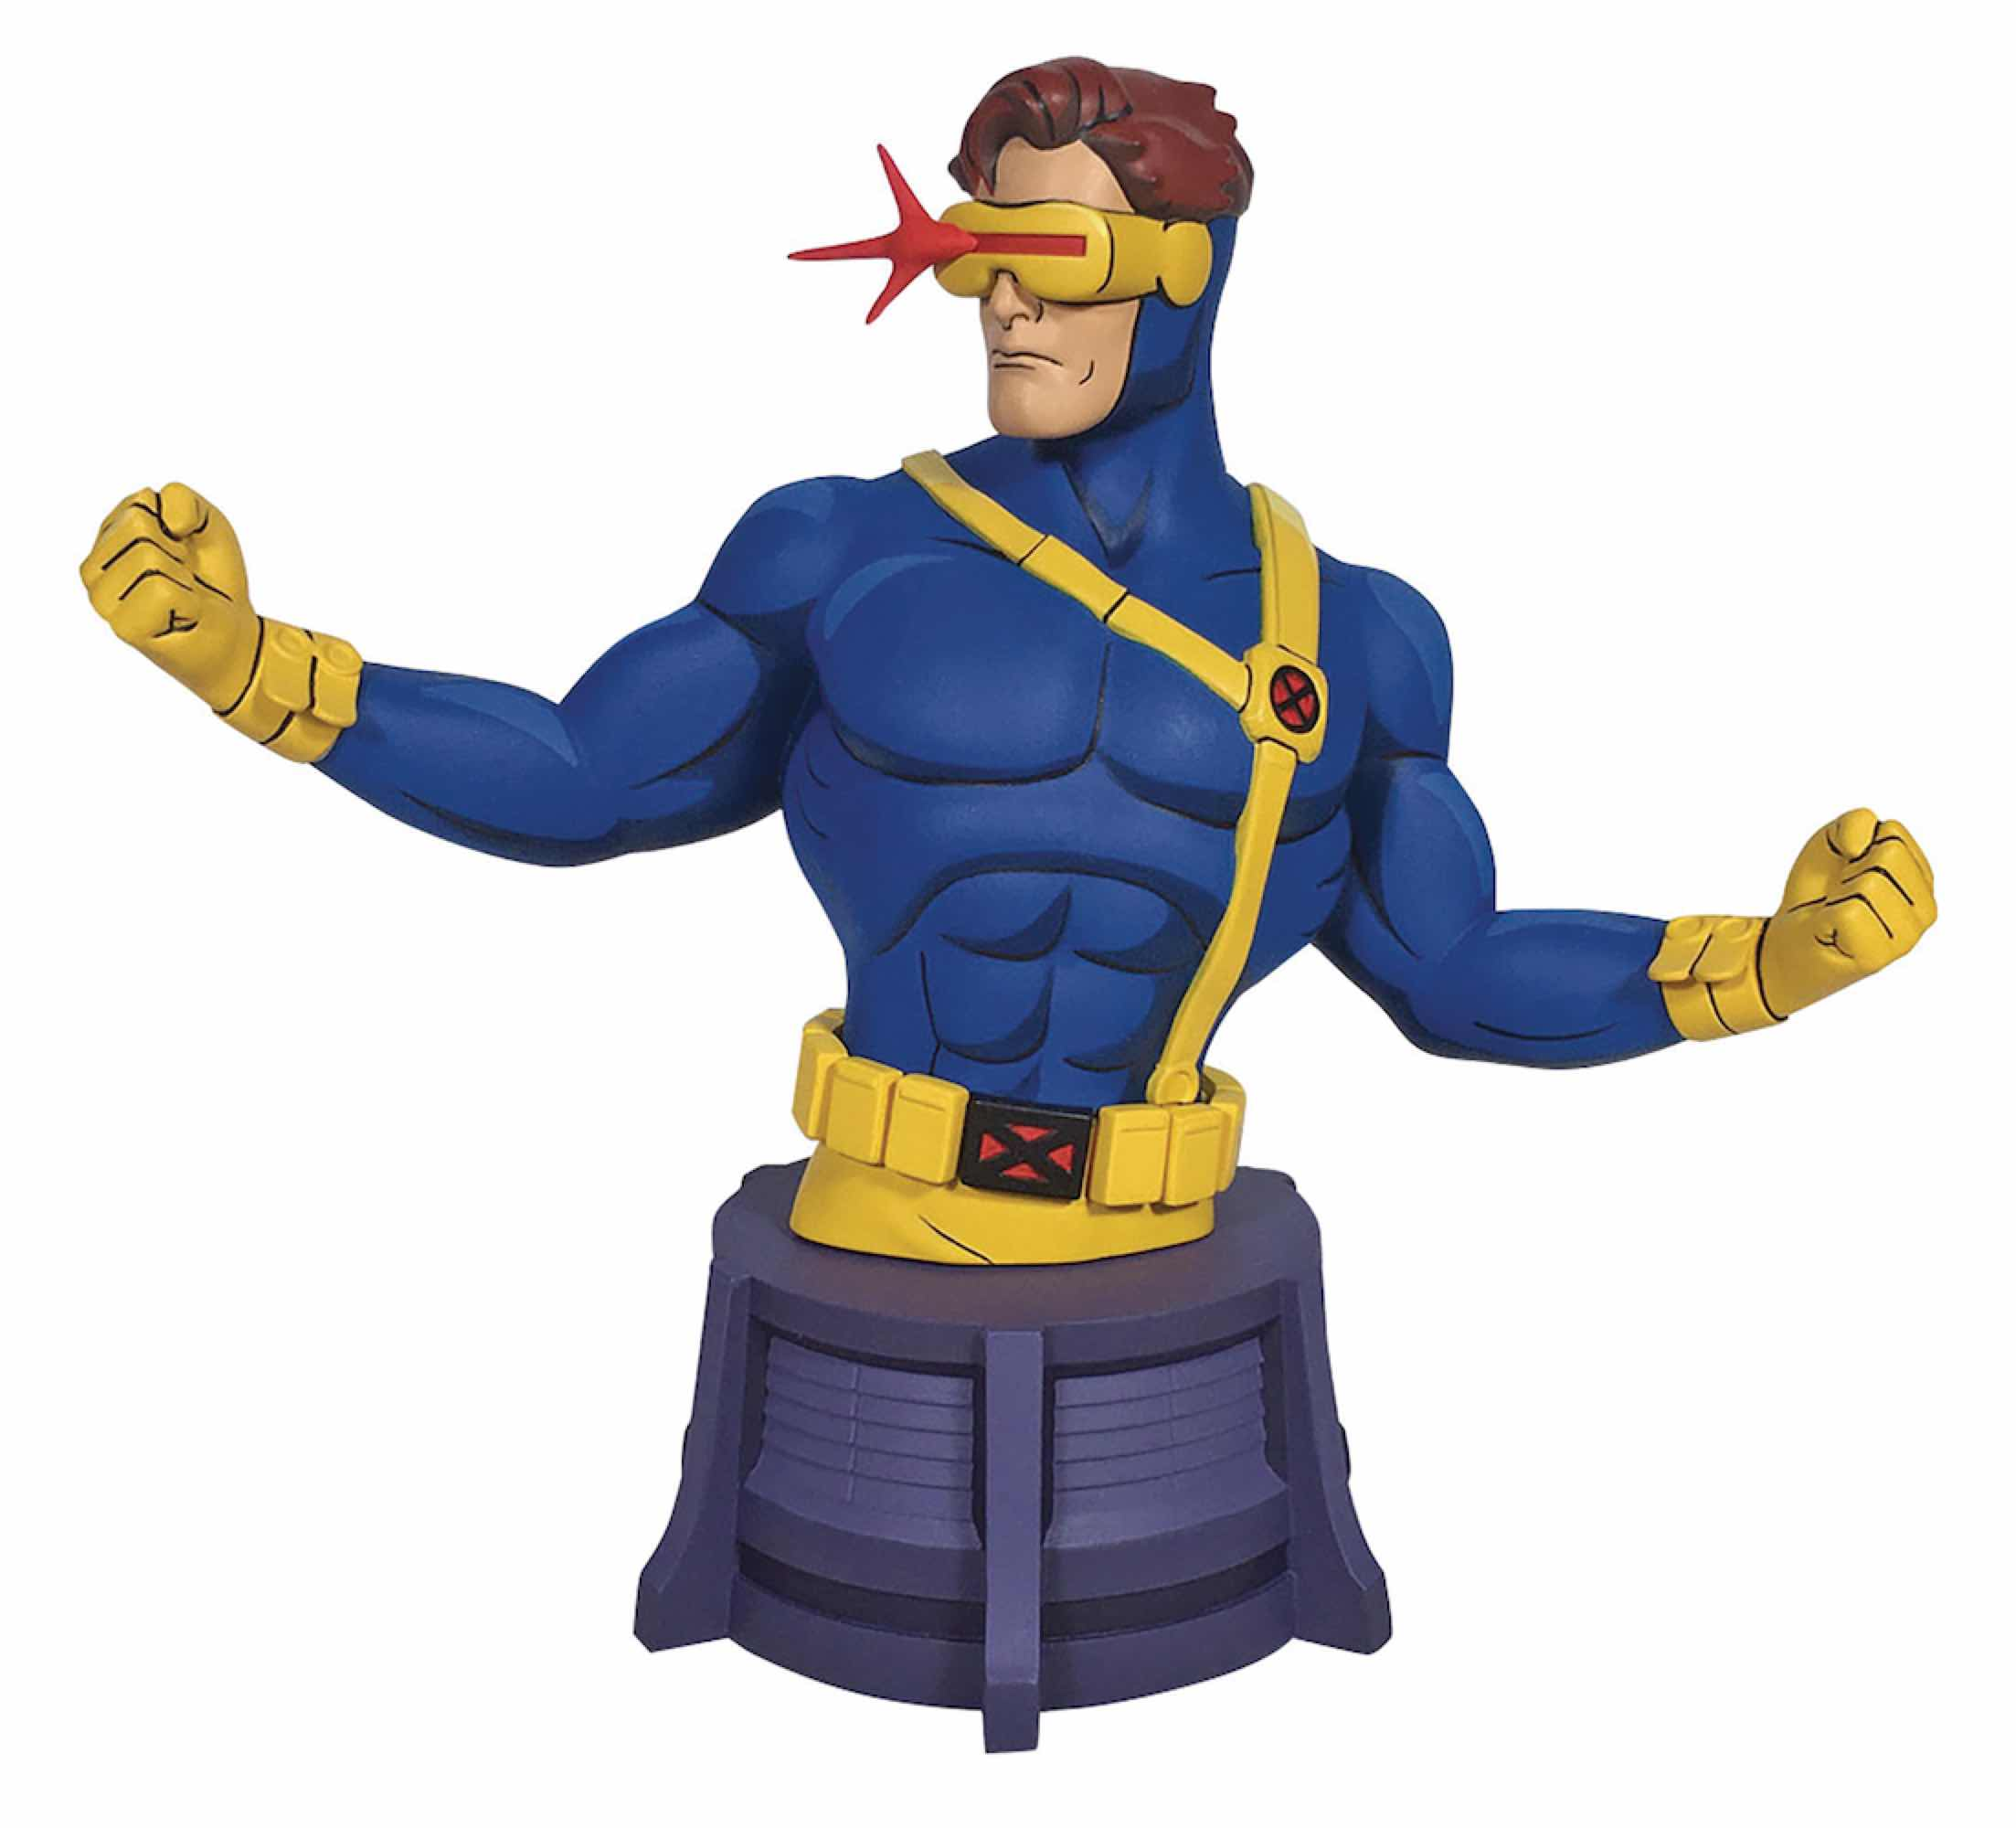 CICLOPE (CYCLOPS) MINI BUSTO RESINA 15 CM MARVEL ANIMATED X-MEN